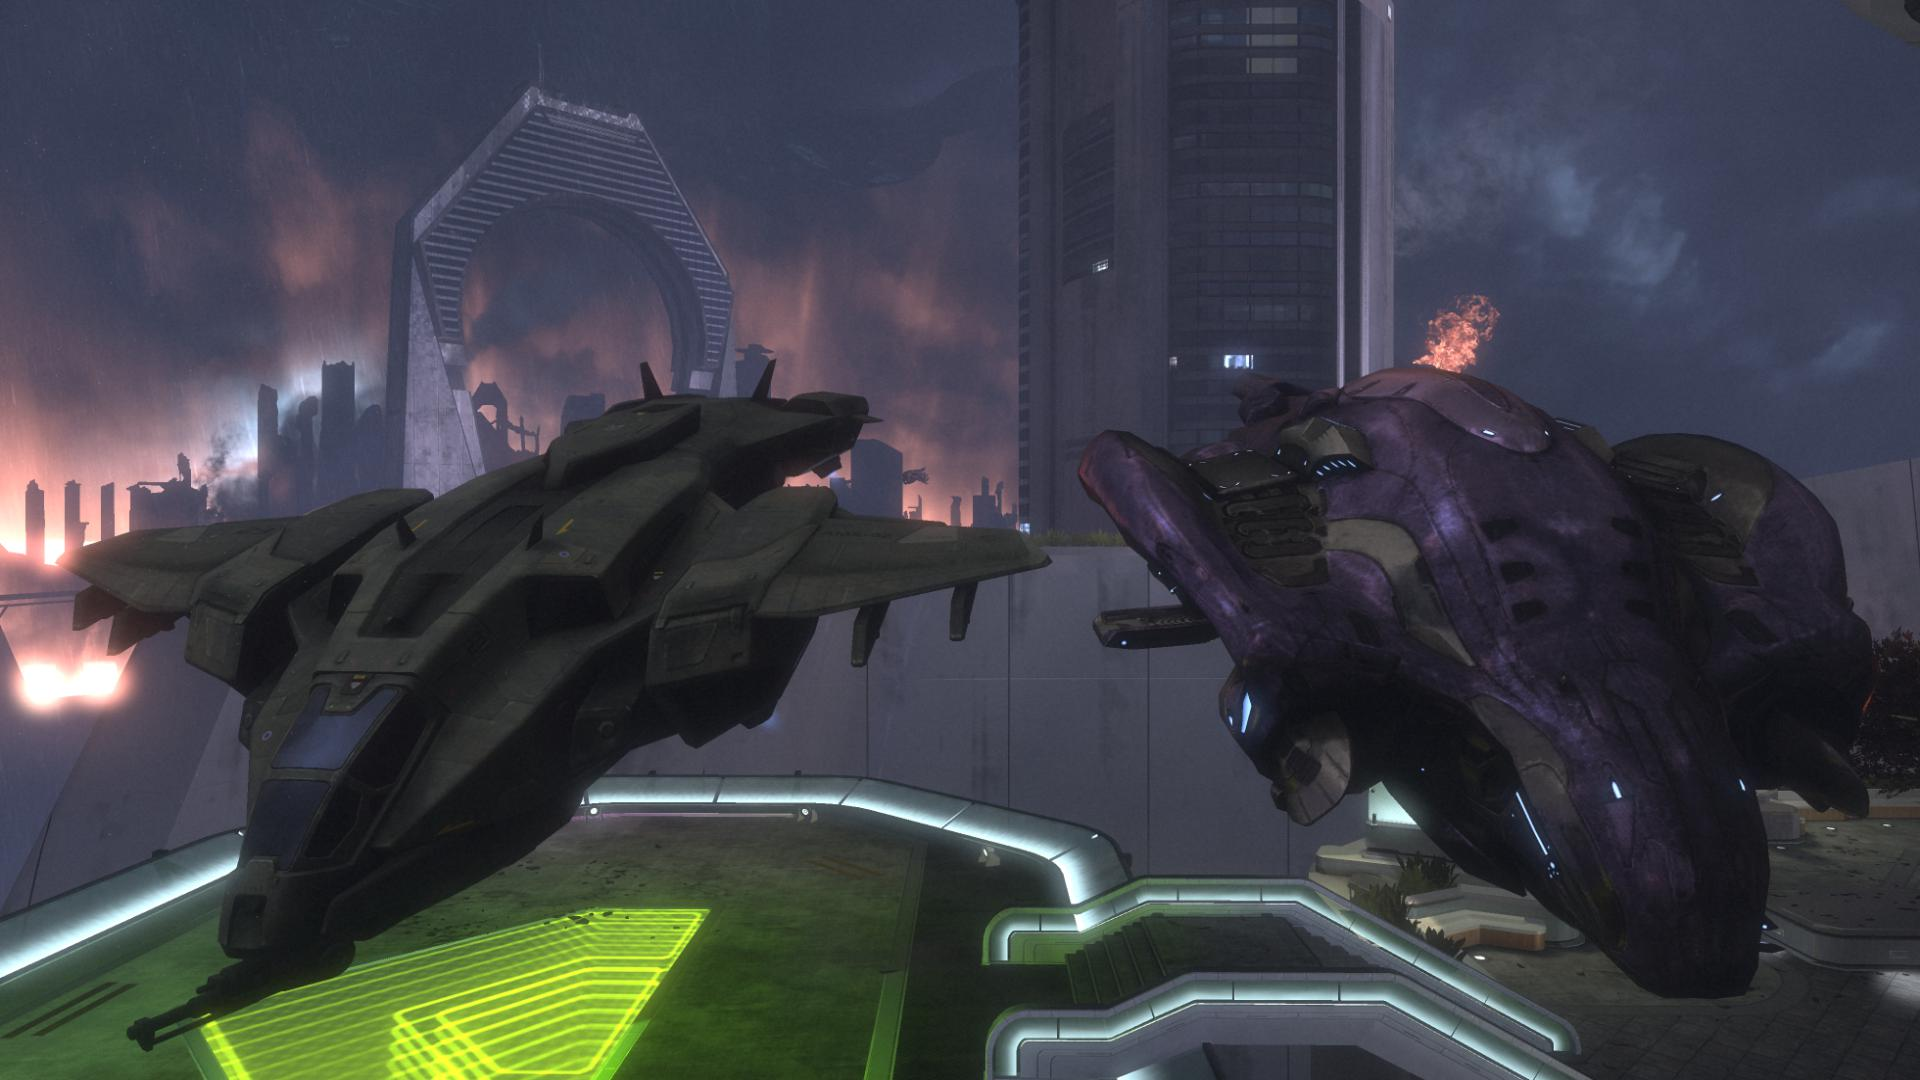 Halo 4 epic forge tutorials episode 2 missile silo youtube.